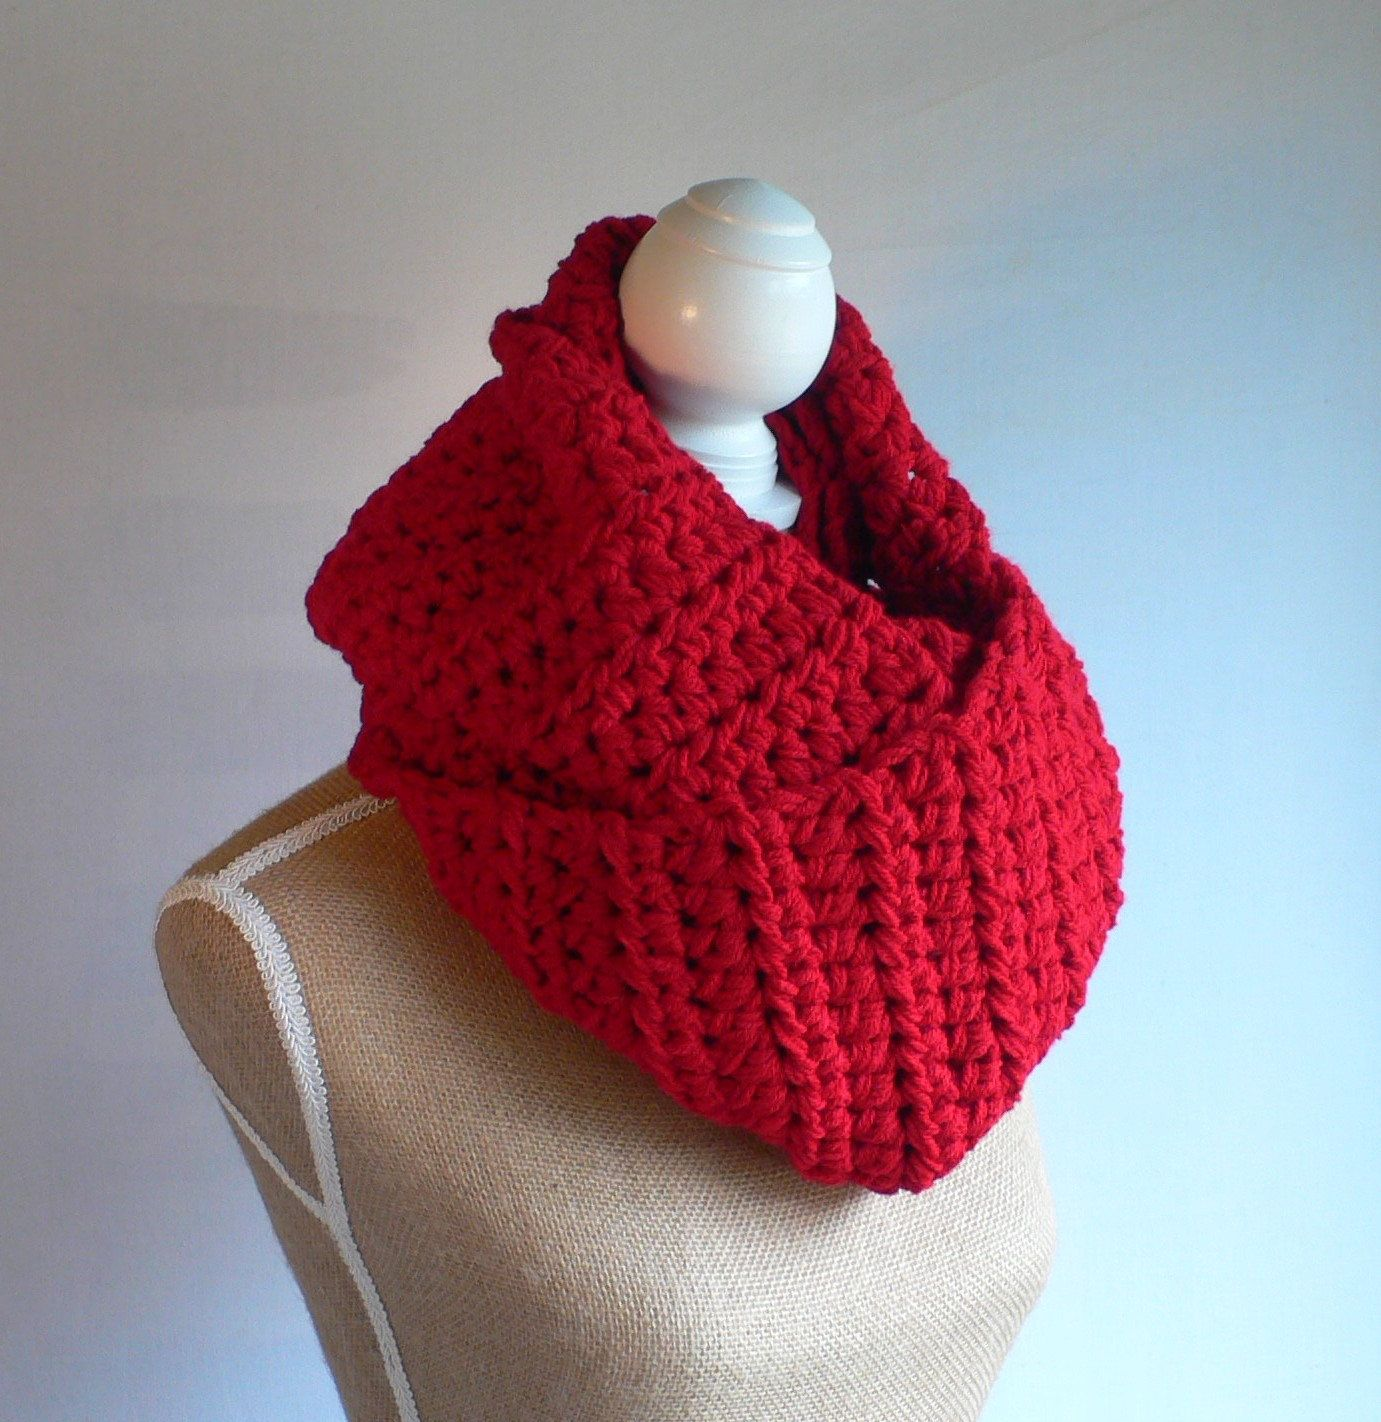 Red Infinity Scarf, Red Scarf, Crochet Scarf, Chunky Infinity,  Handmade Scarf, Womens Accessories, Crochet Circle Scarf, Extra Long Scarf by CTDESIGNSBESPOKEBAGS on Etsy